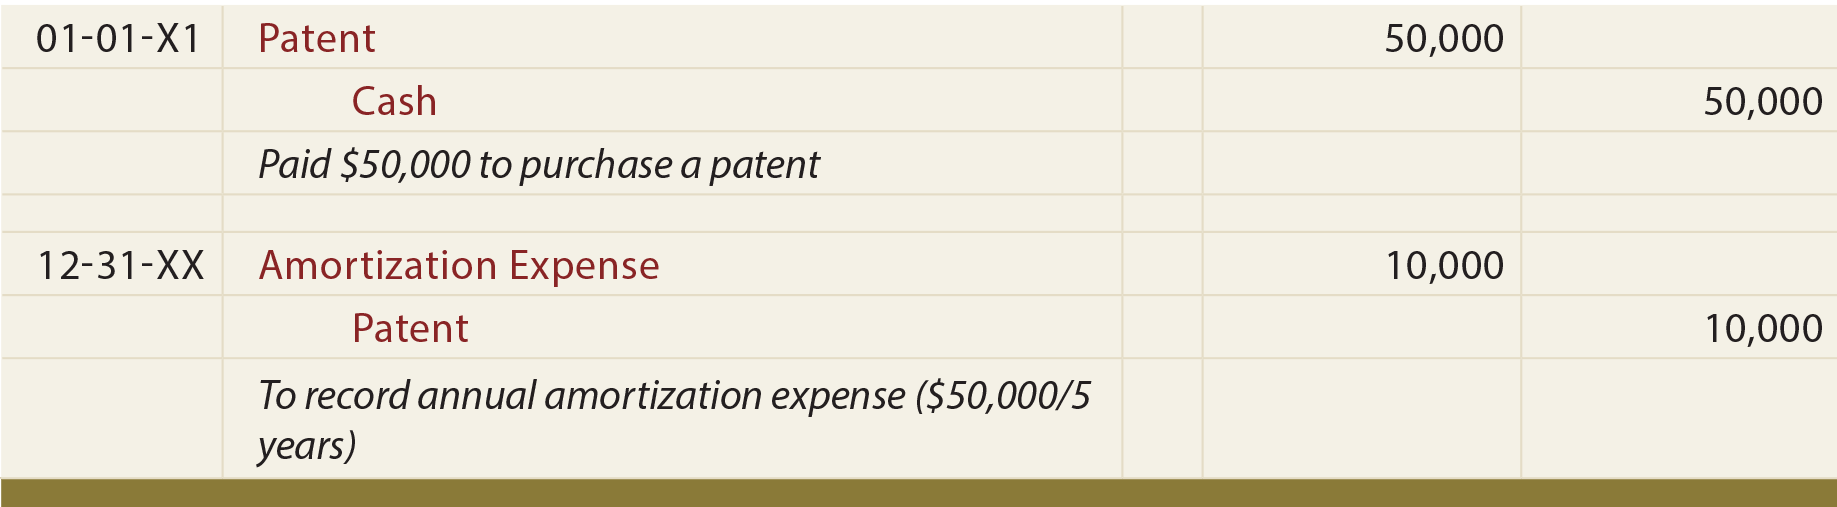 Patent Journal entry